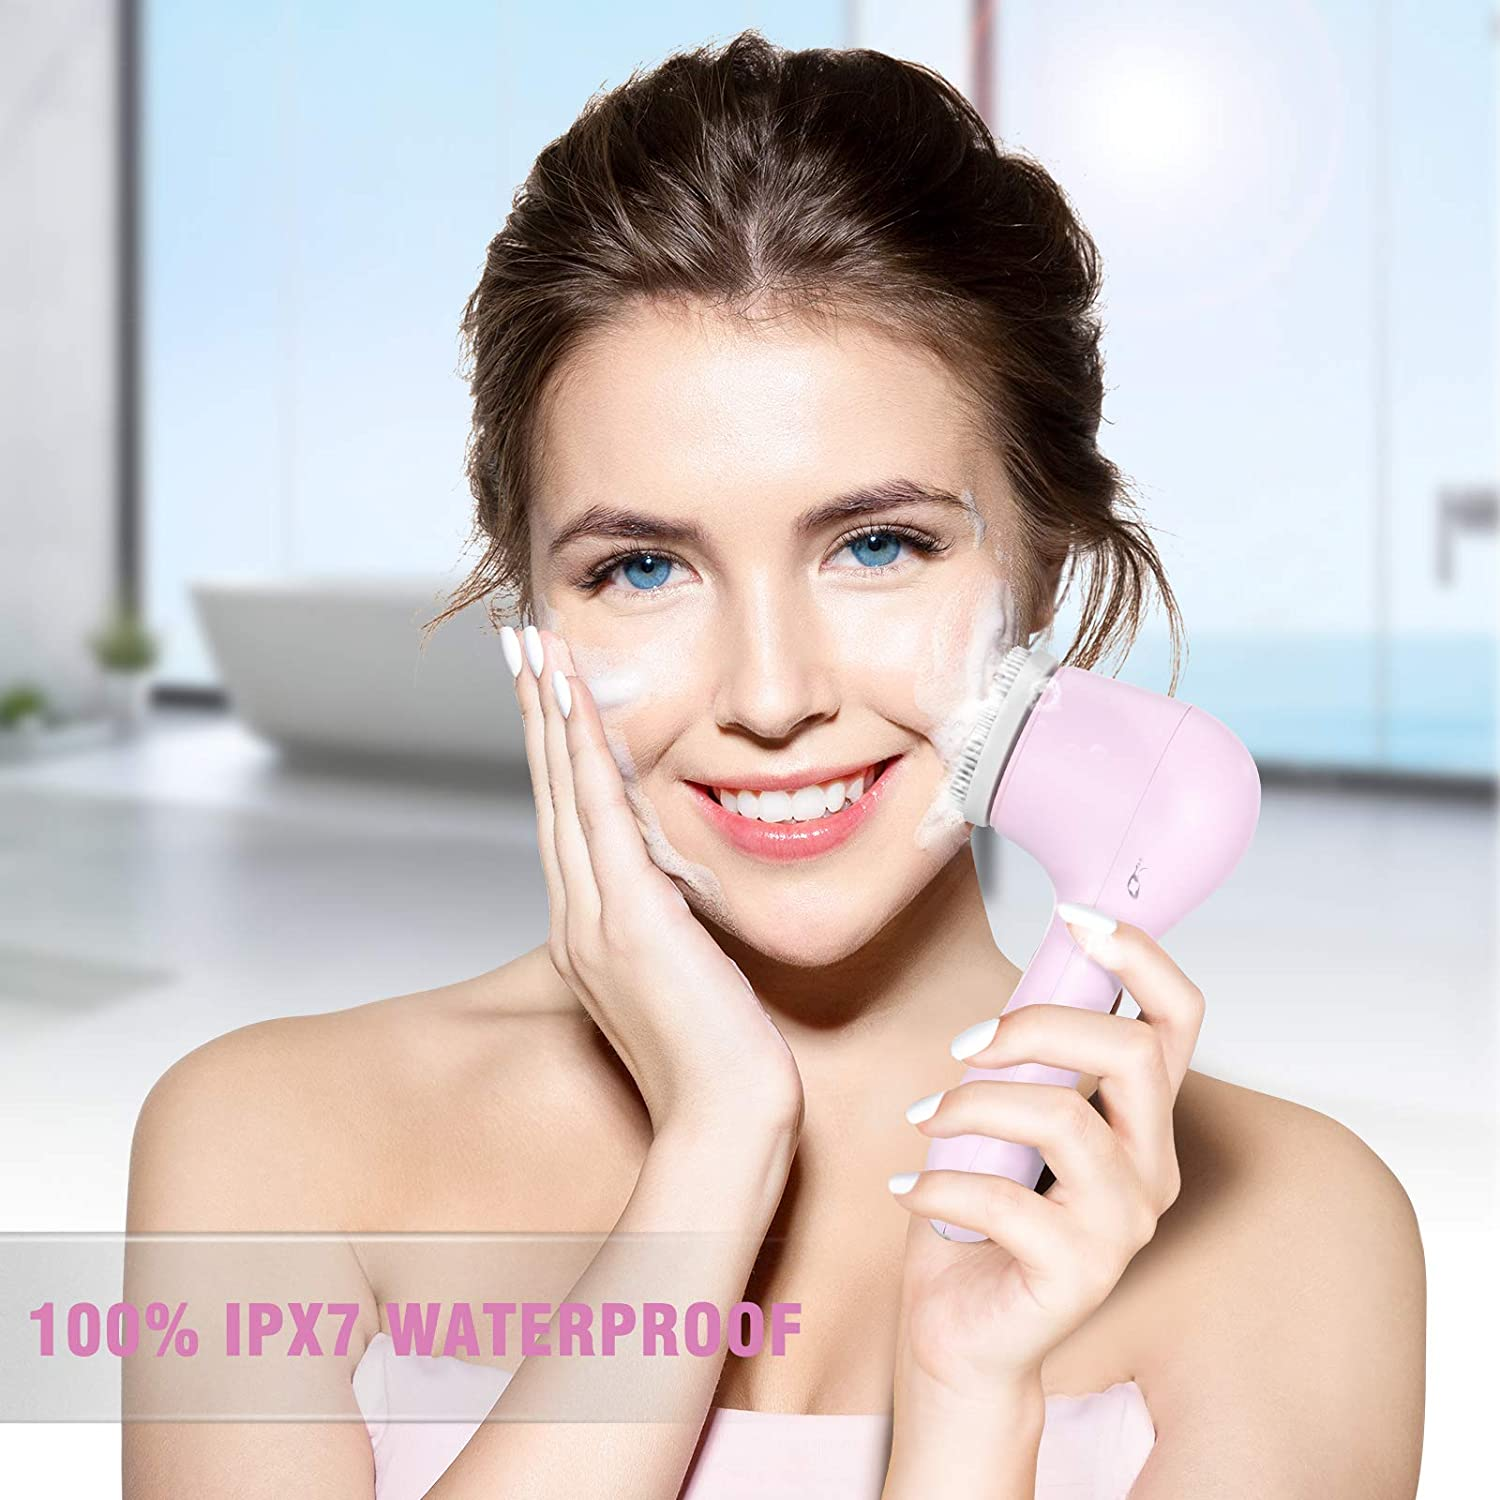 Facial Cleansing Brush, Rechargeable Face Brush Waterproof Electric Spin Face Scrub Brush with USB Charge (Pink)